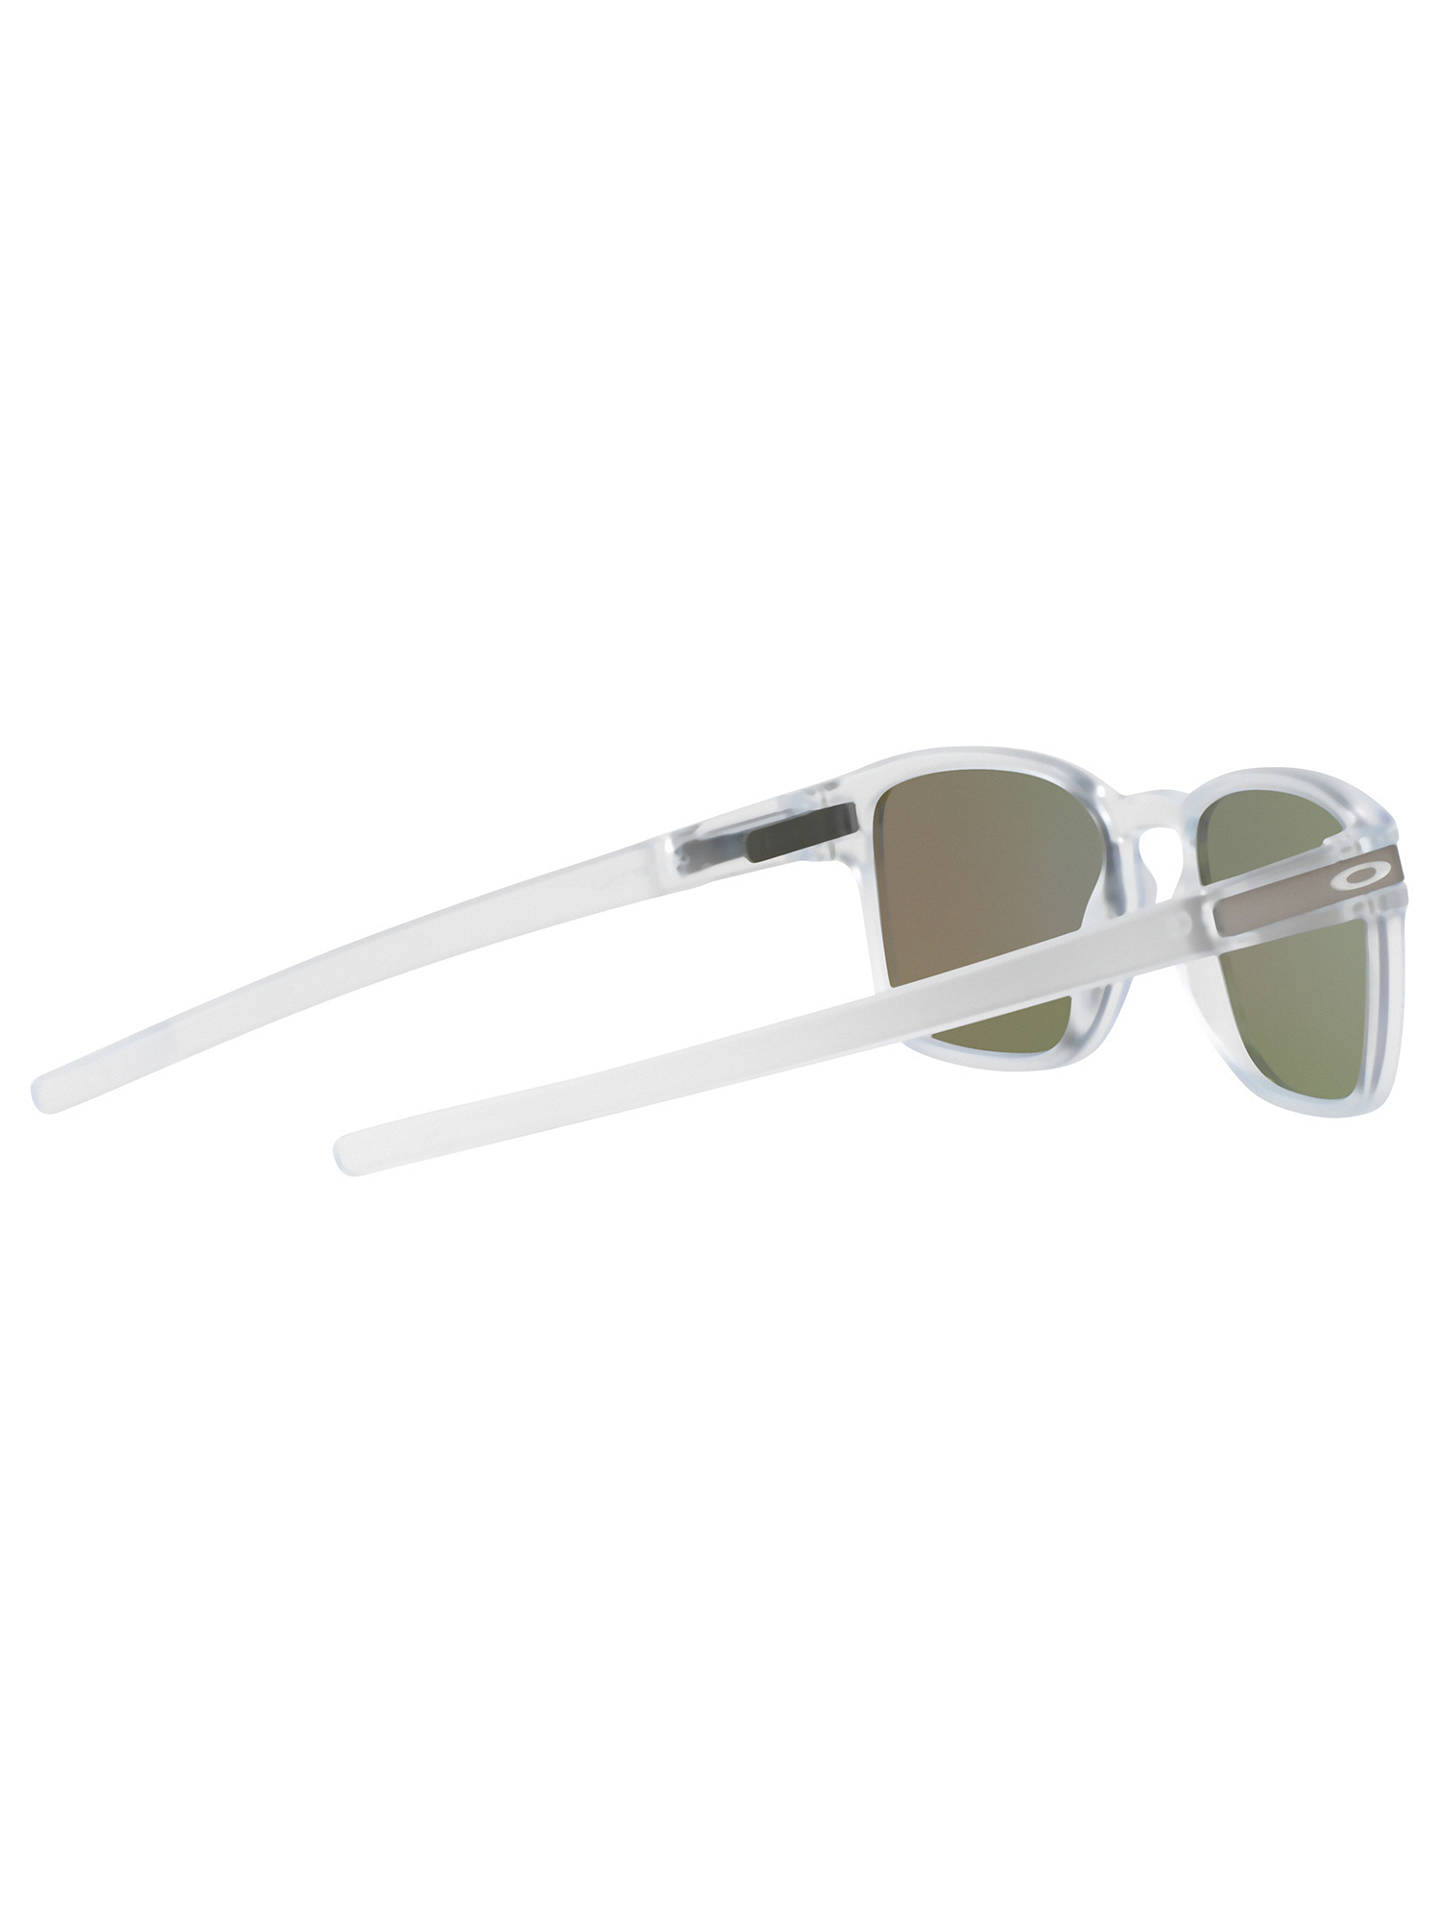 Buy Oakley OO9353 Latch SQ Polarised Square Sunglasses, White/Blue Online at johnlewis.com